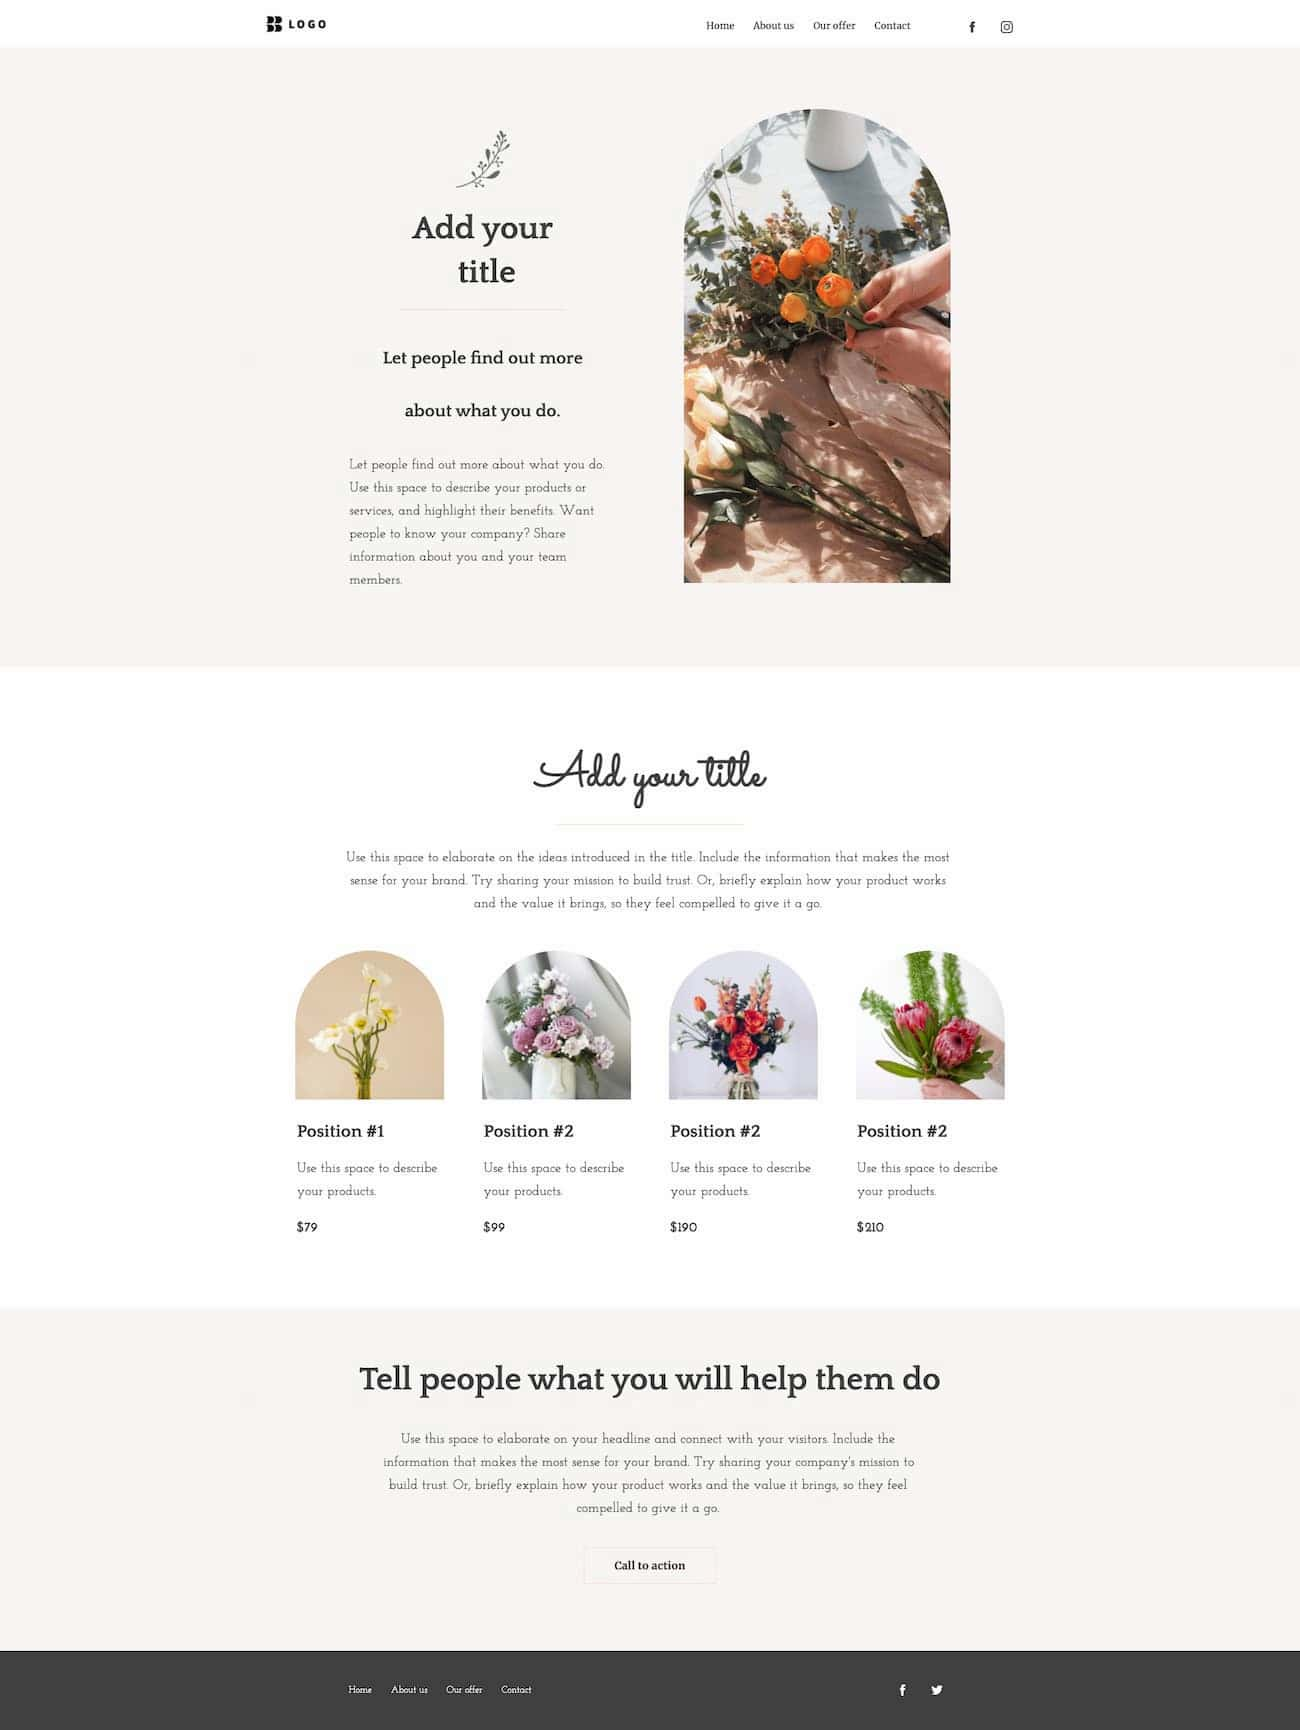 Offers page example from one of the GetResponse website templates.